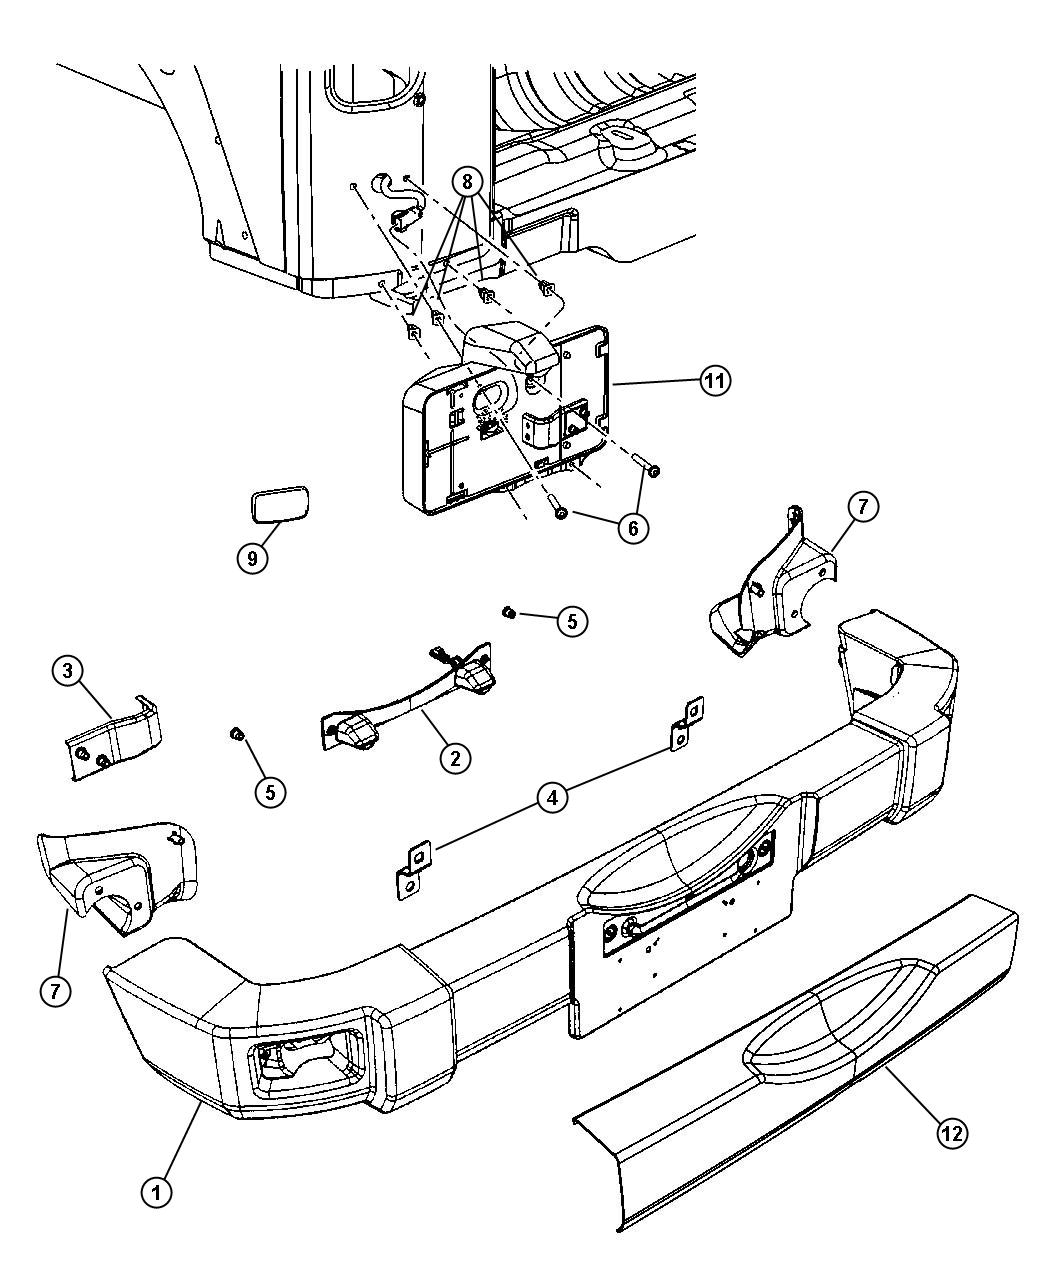 Jeep Wrangler Bumper Parts Diagram, Jeep, Free Engine